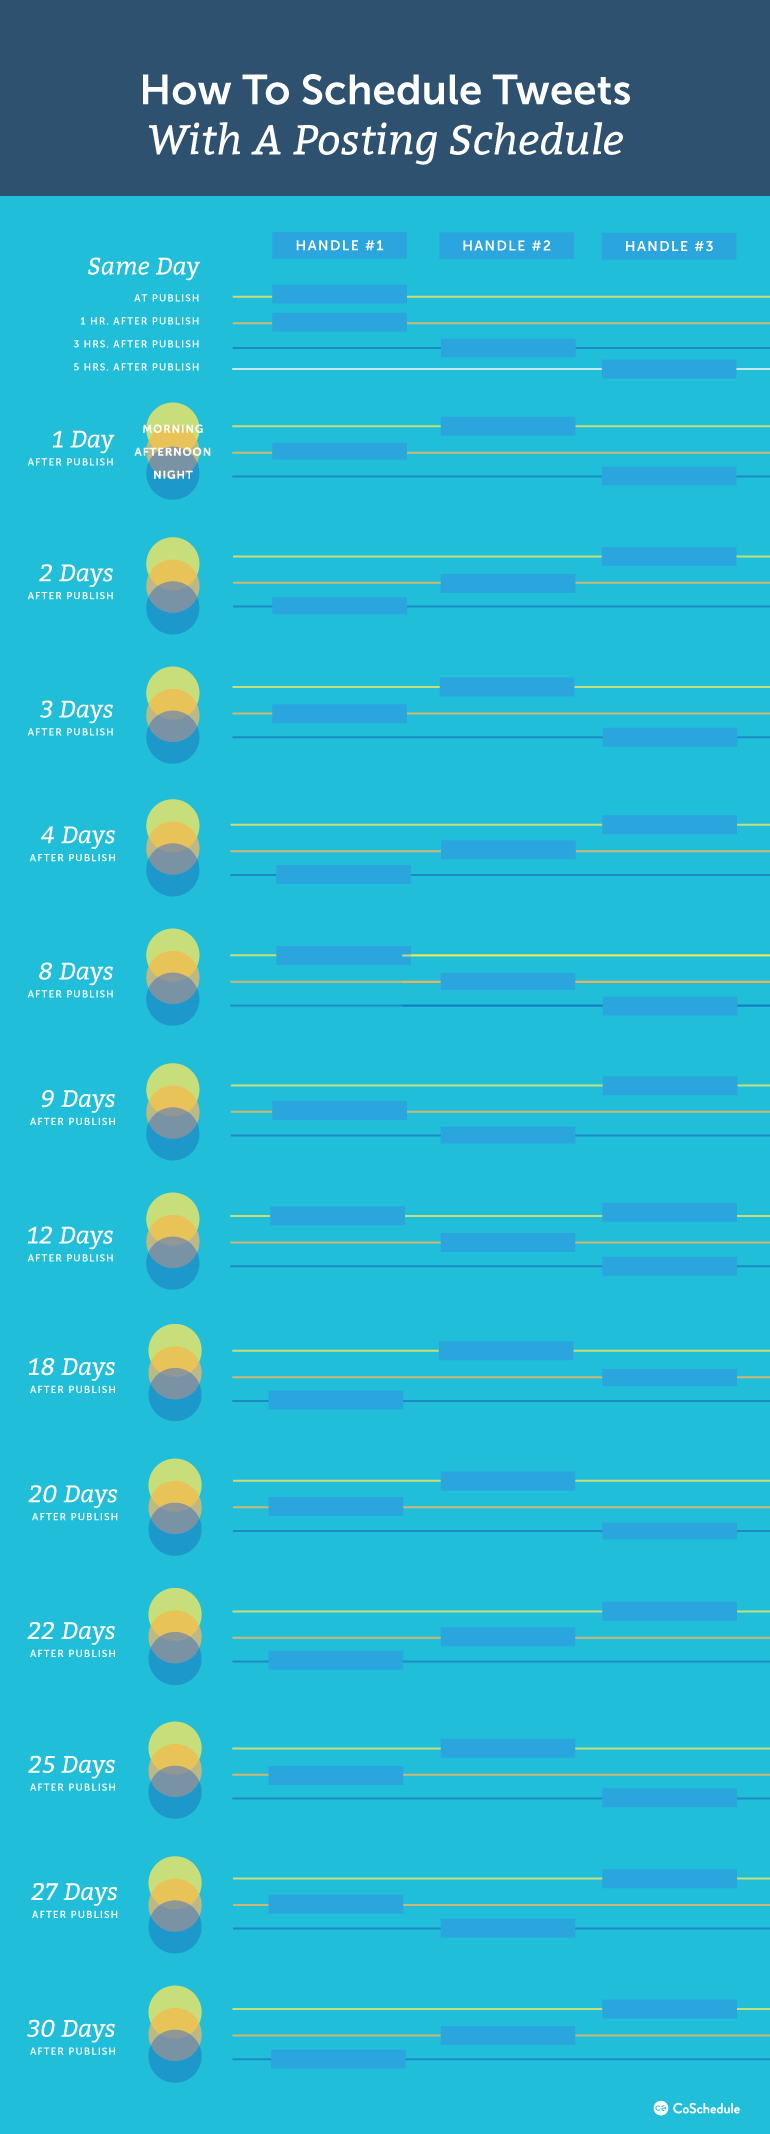 How To Schedule Tweets With A Posting Schedule